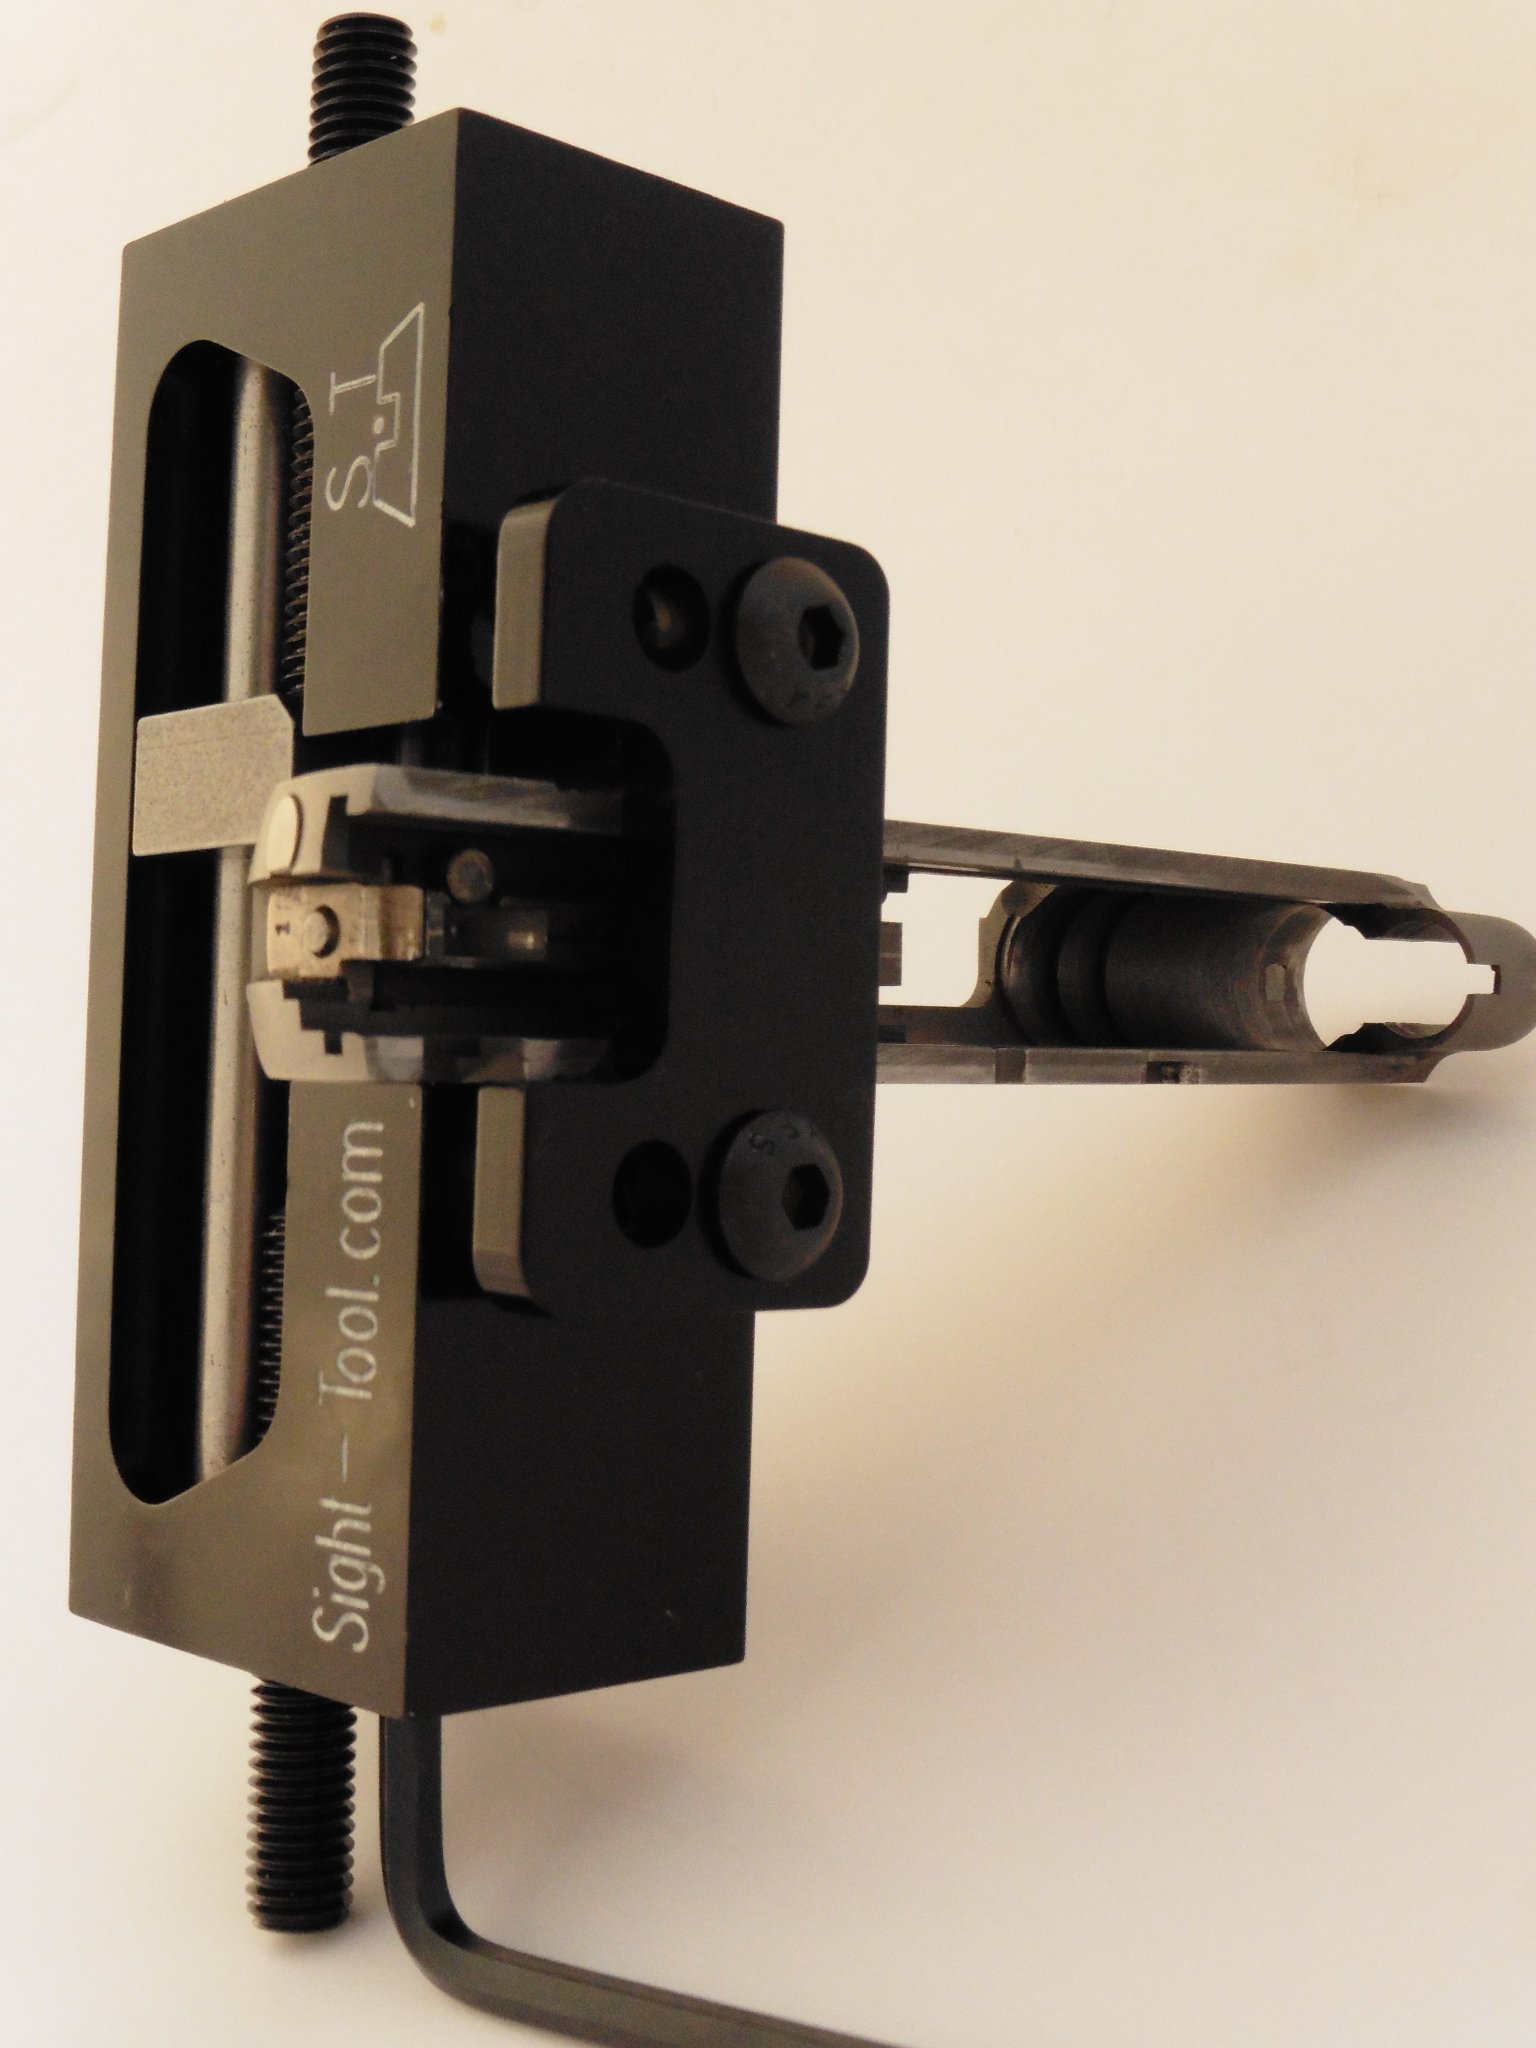 Universal Handgun Sight Pusher Tool for 1911 Sig springfield and others* Best tool on the market for front or rear sights* MADE IN USA by sight-tool.com (Image #5)